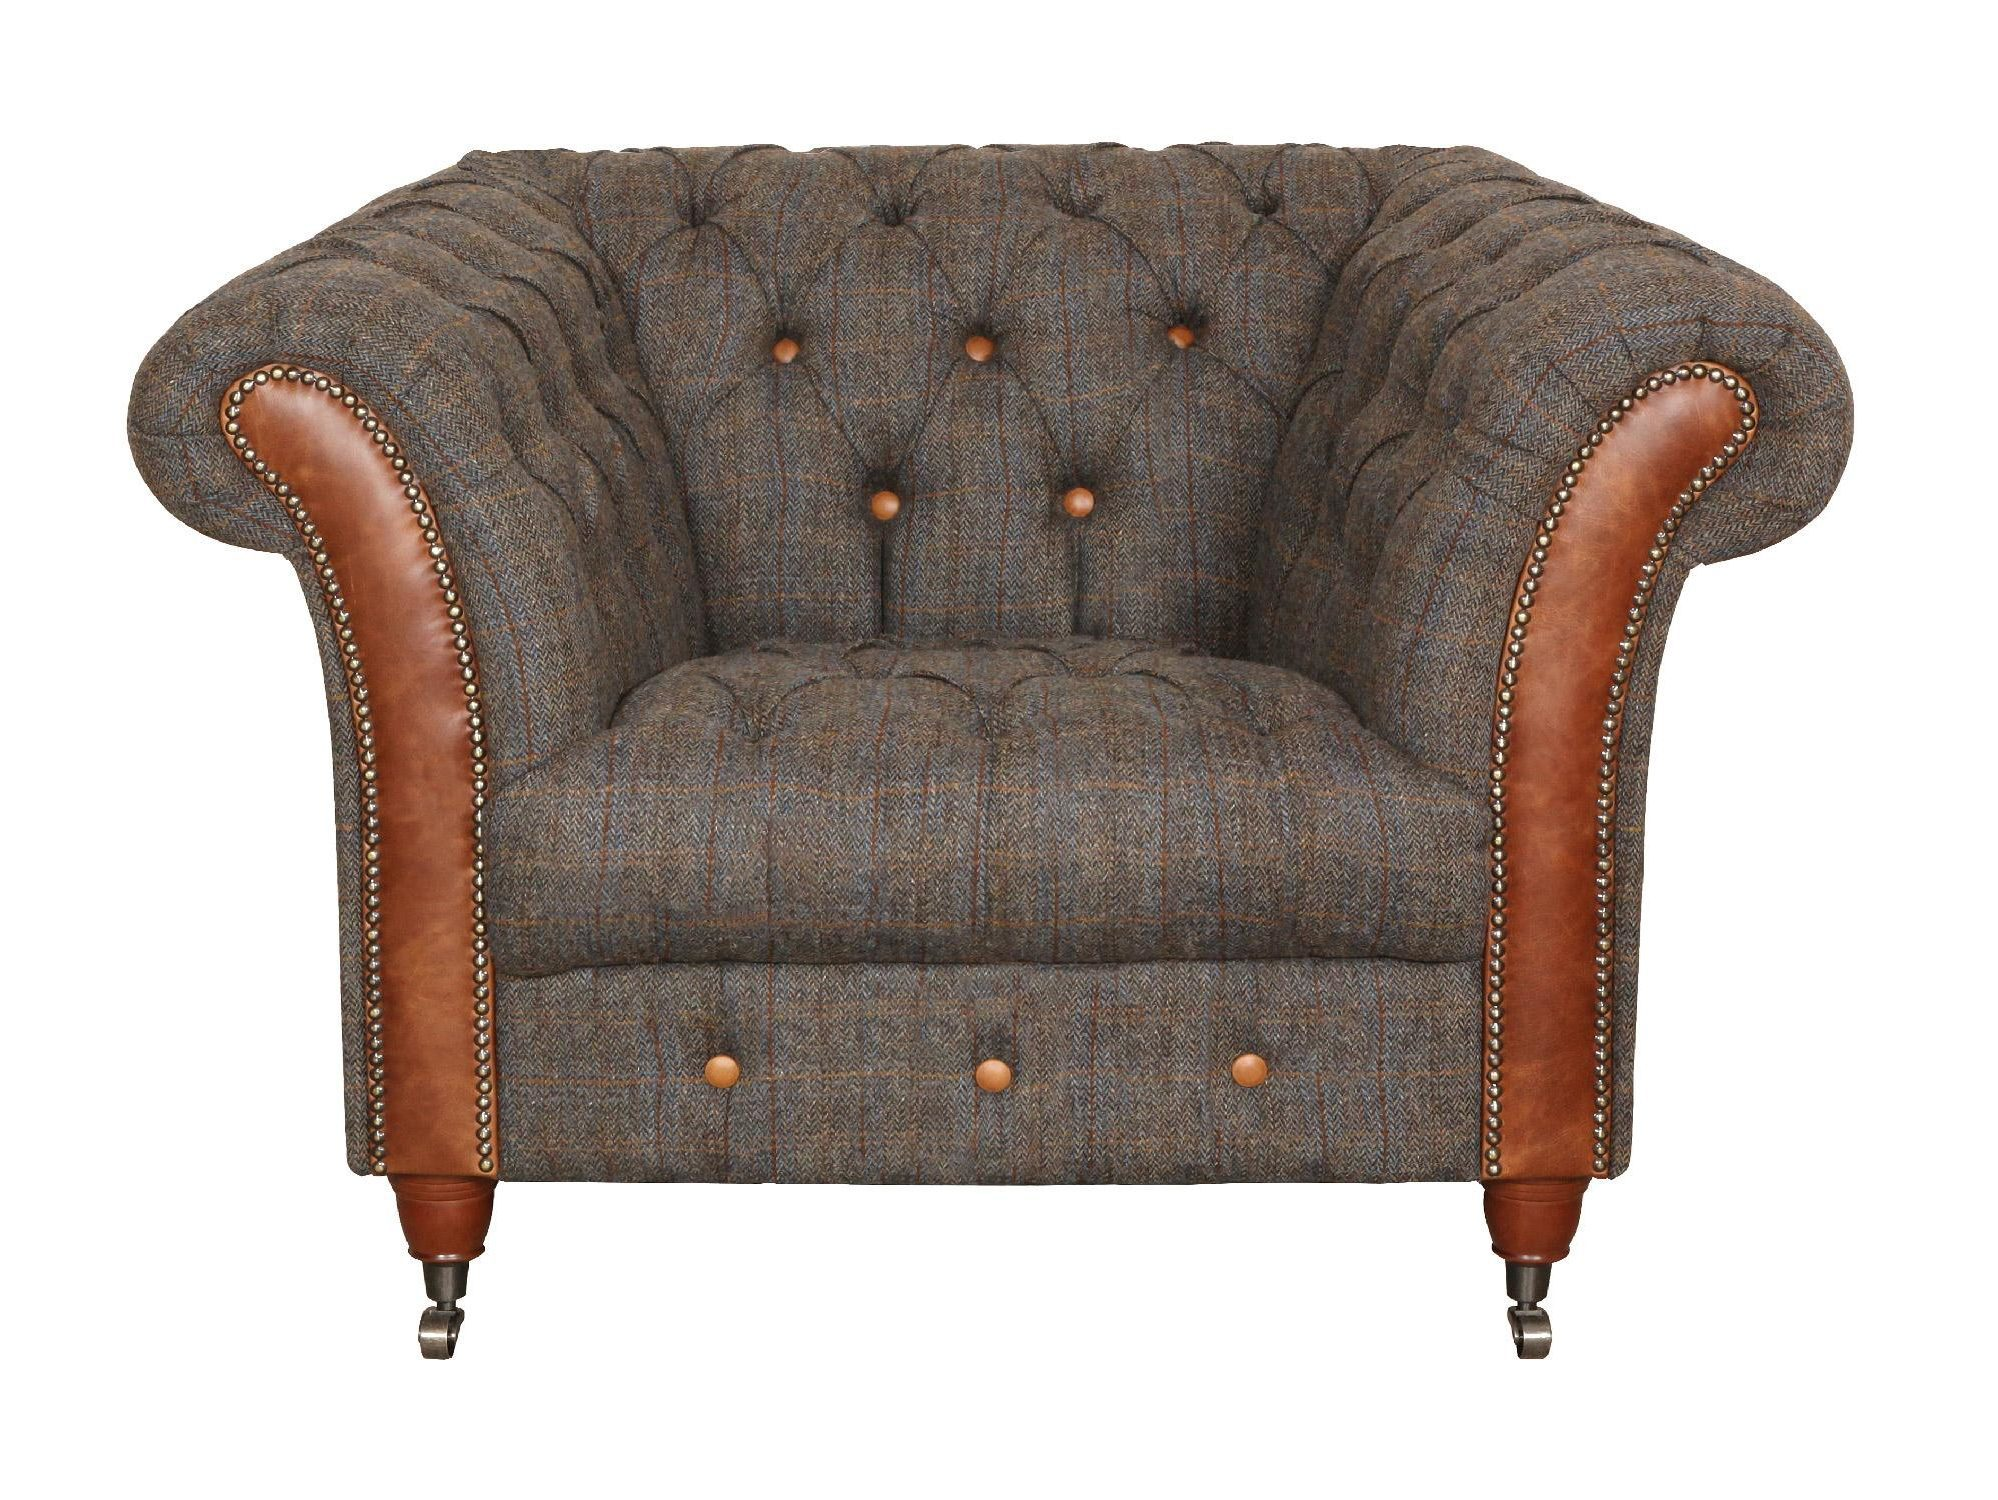 Vintage Sofa Company Chester Club Fast Track Chair moreland tweed and cerato brown chesterfield armchair